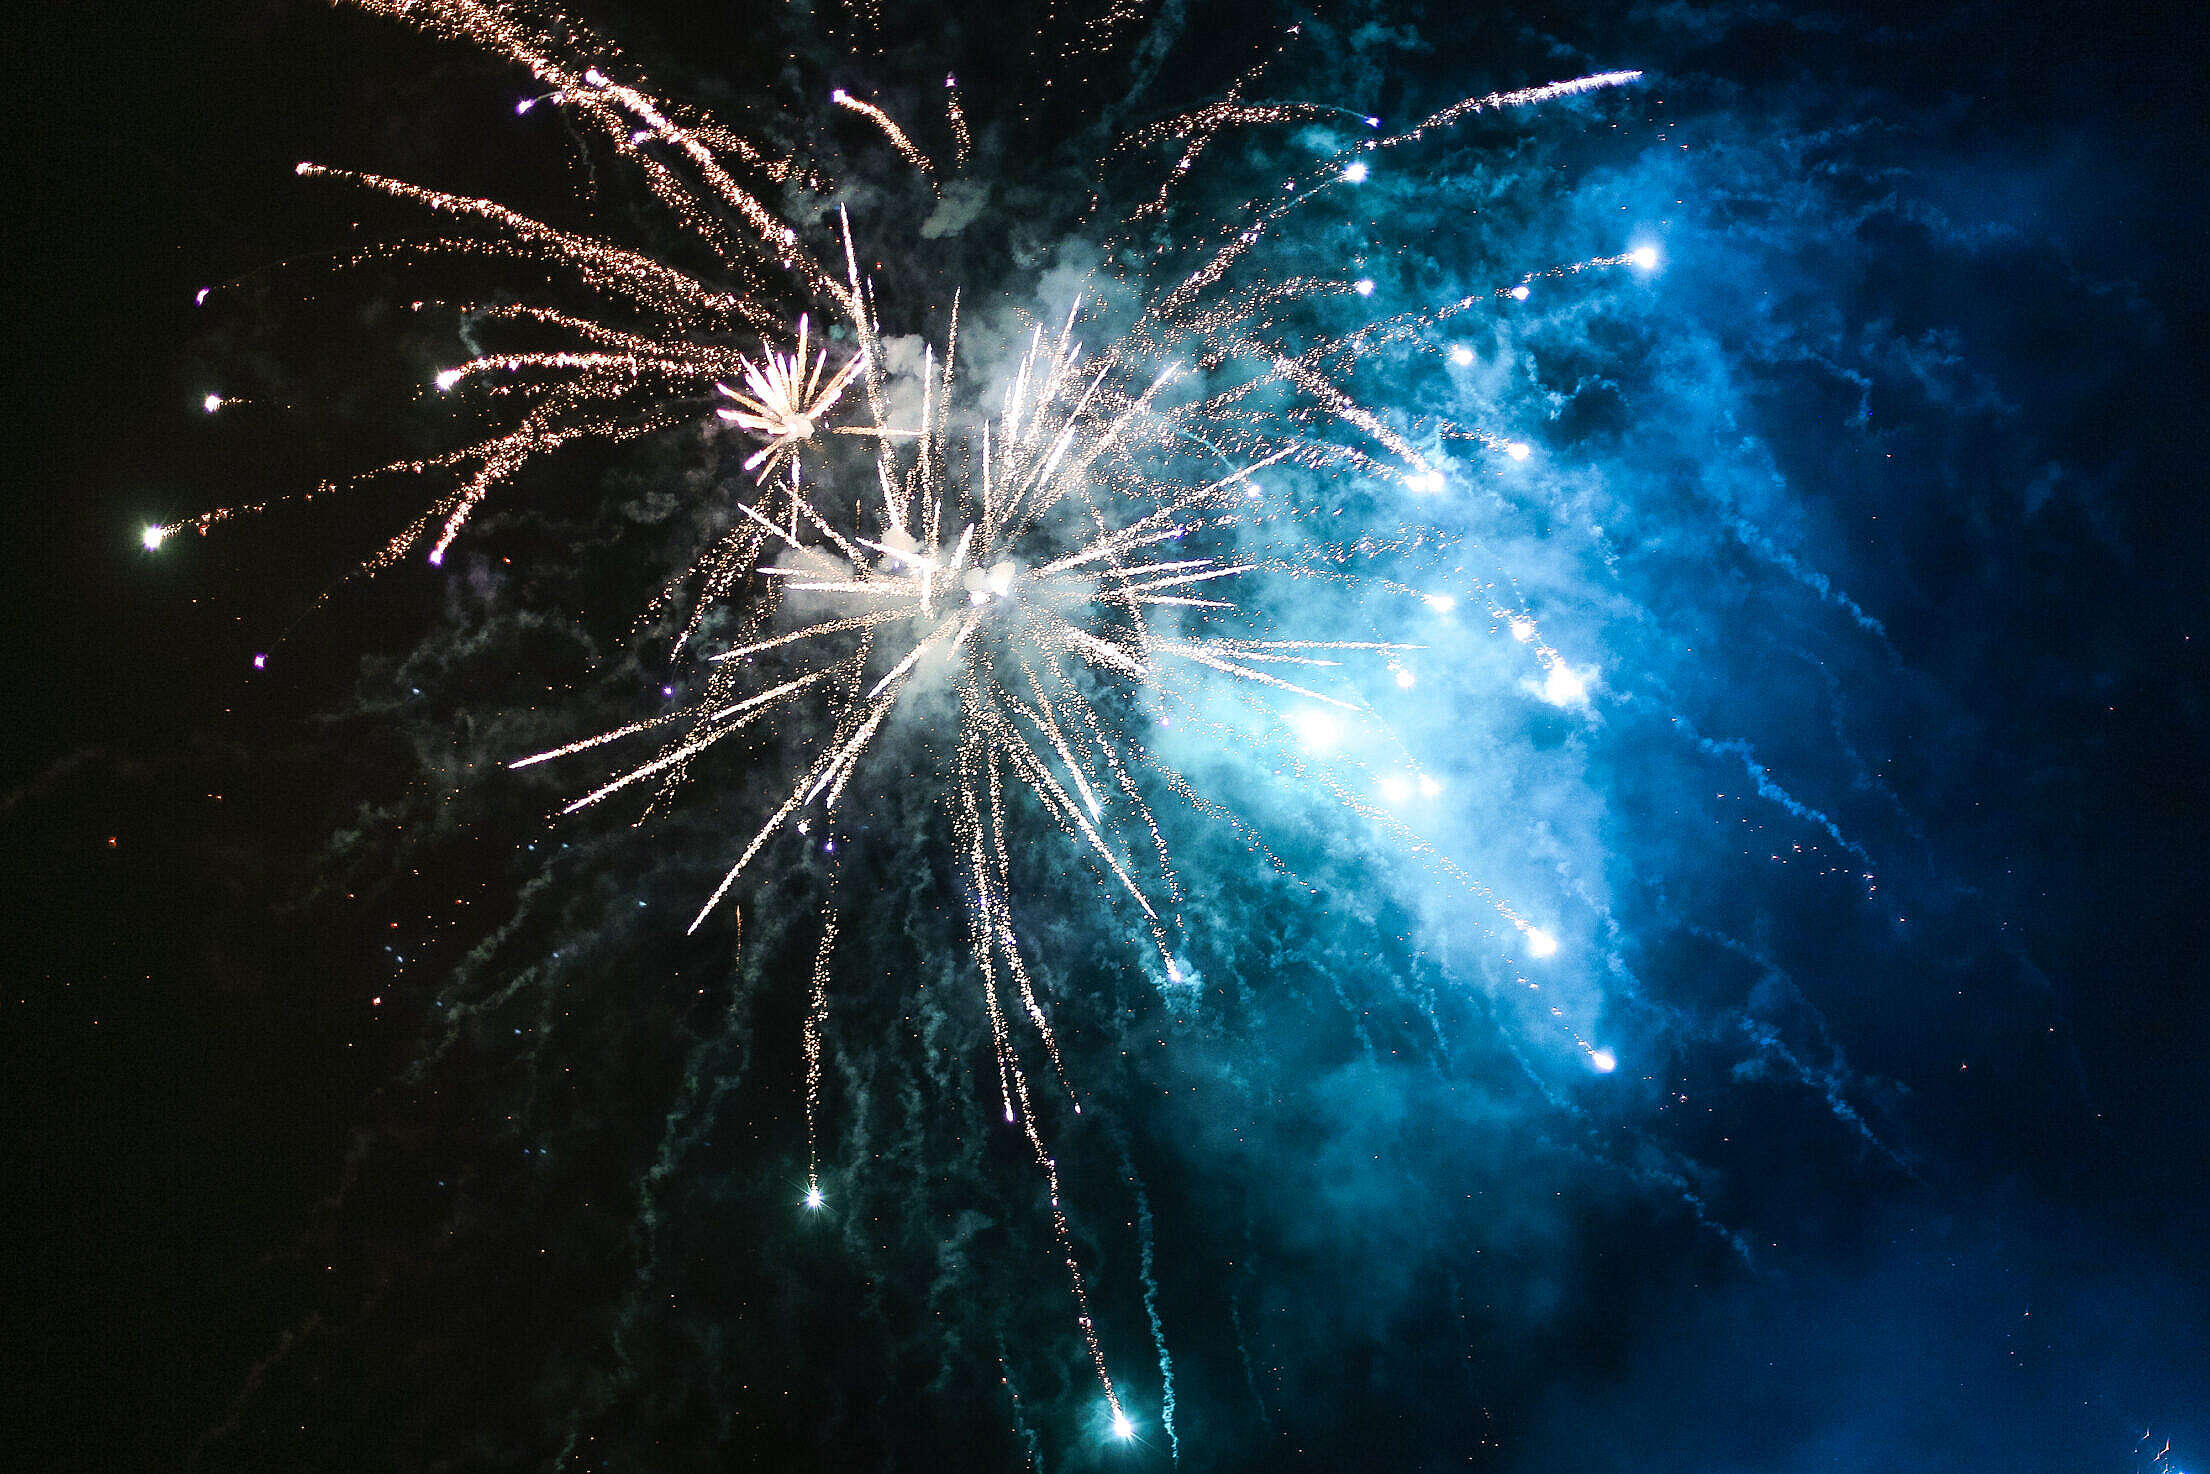 New Year's Eve/Silvester 2015 Fireworks Free Stock Photo